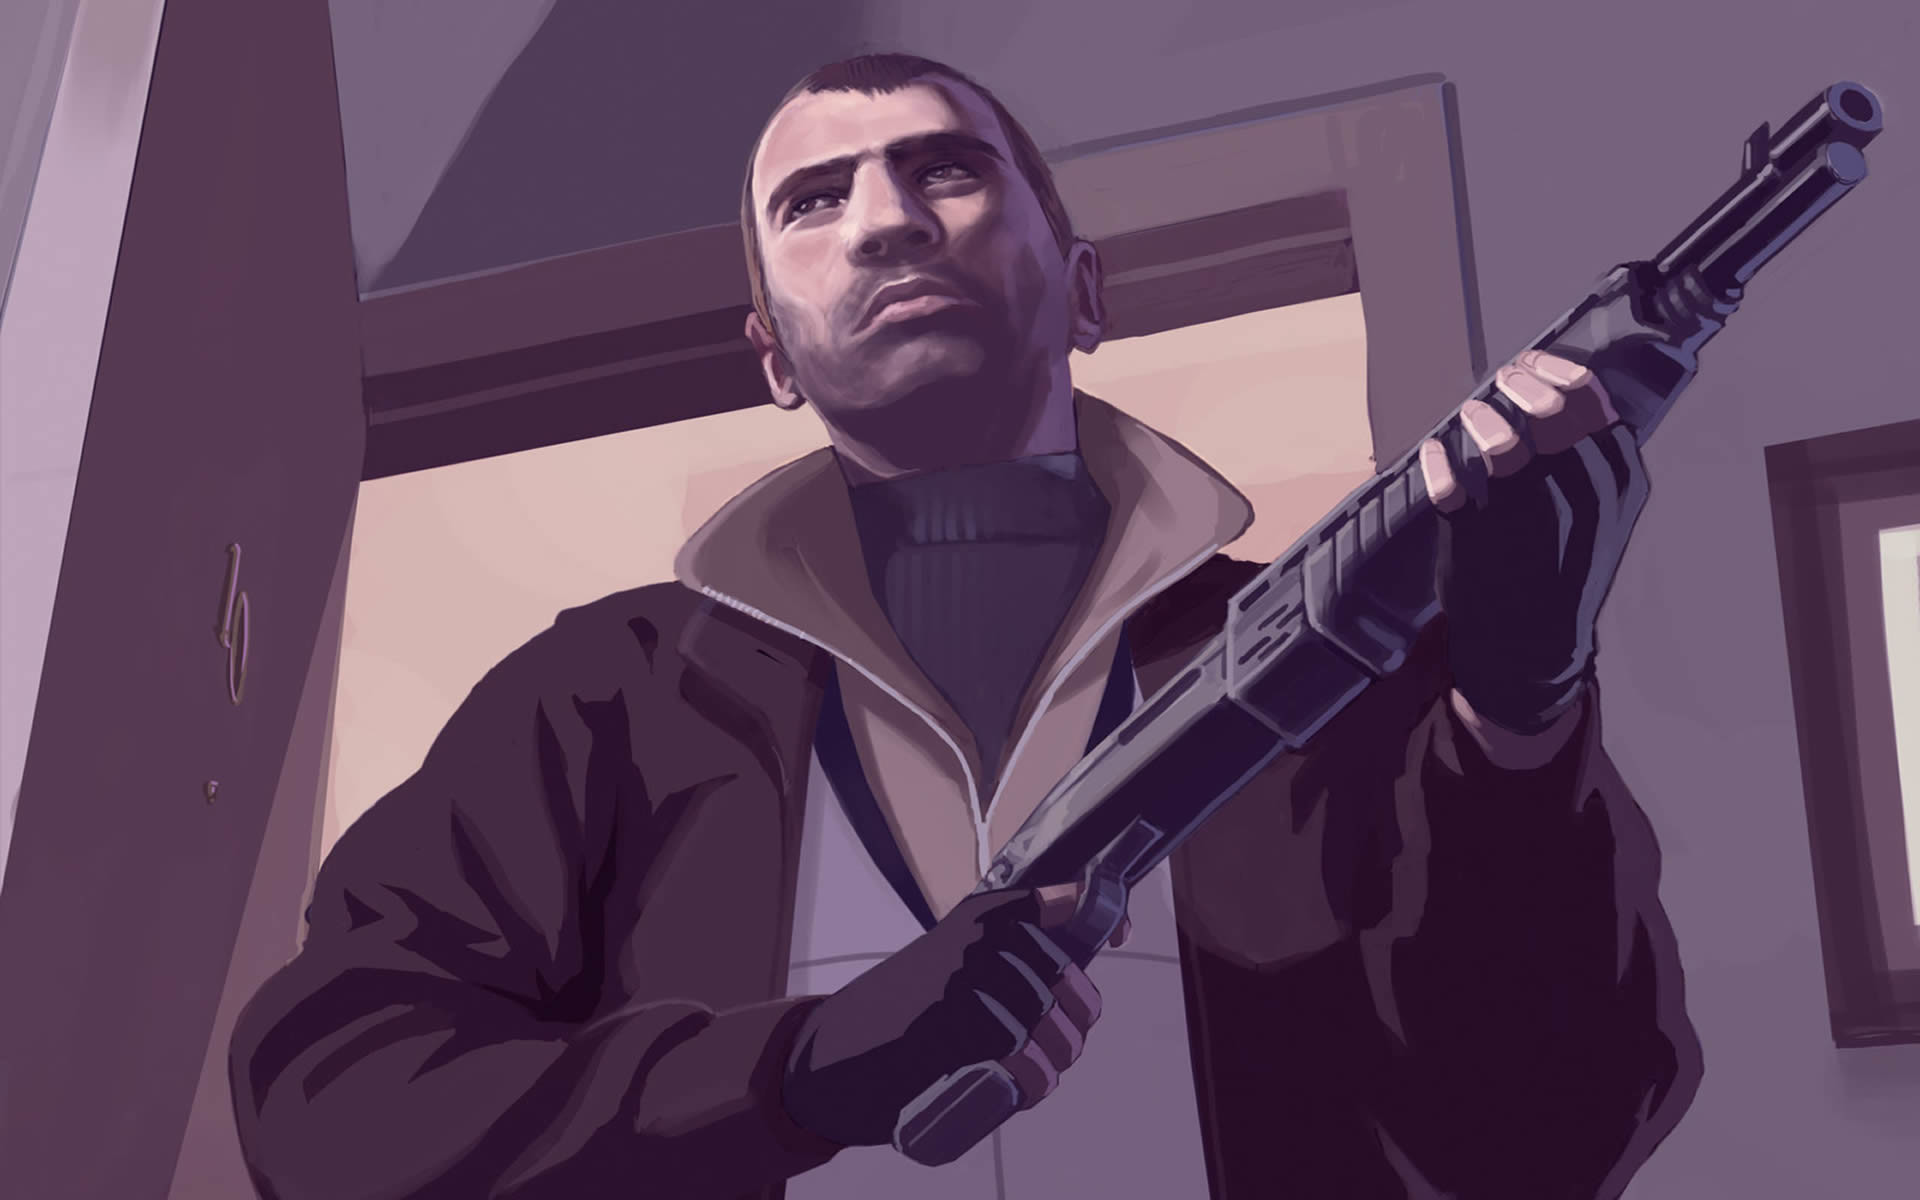 Res: 1920x1200, Niko Bellic With Shotgun